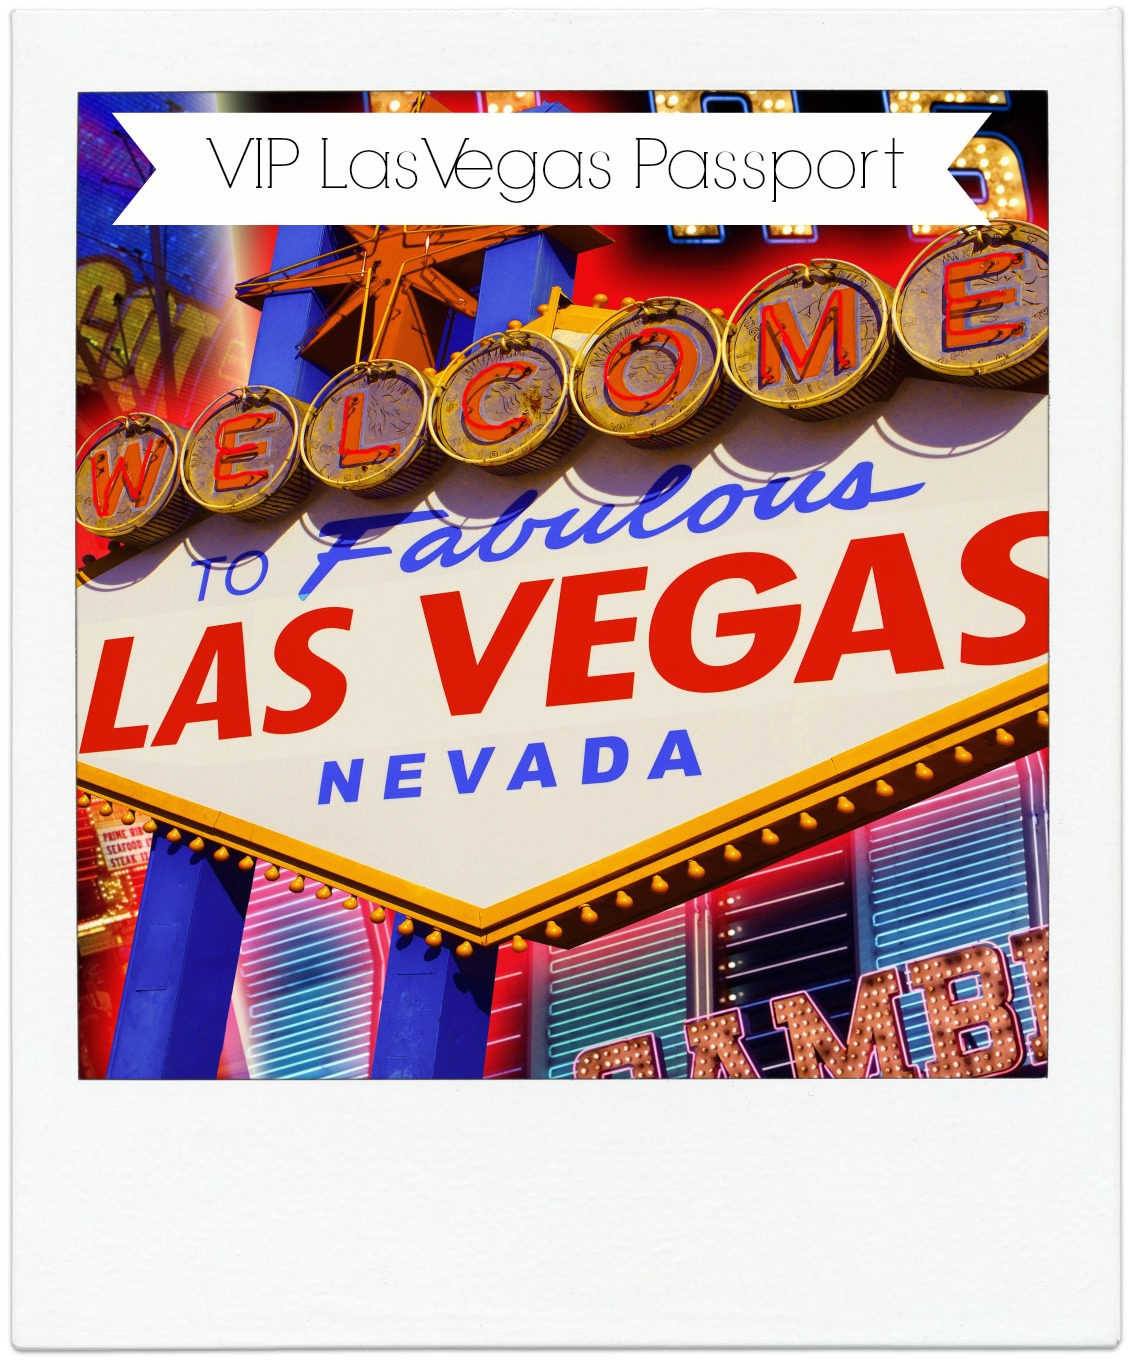 Vacation Travel Las Vegas